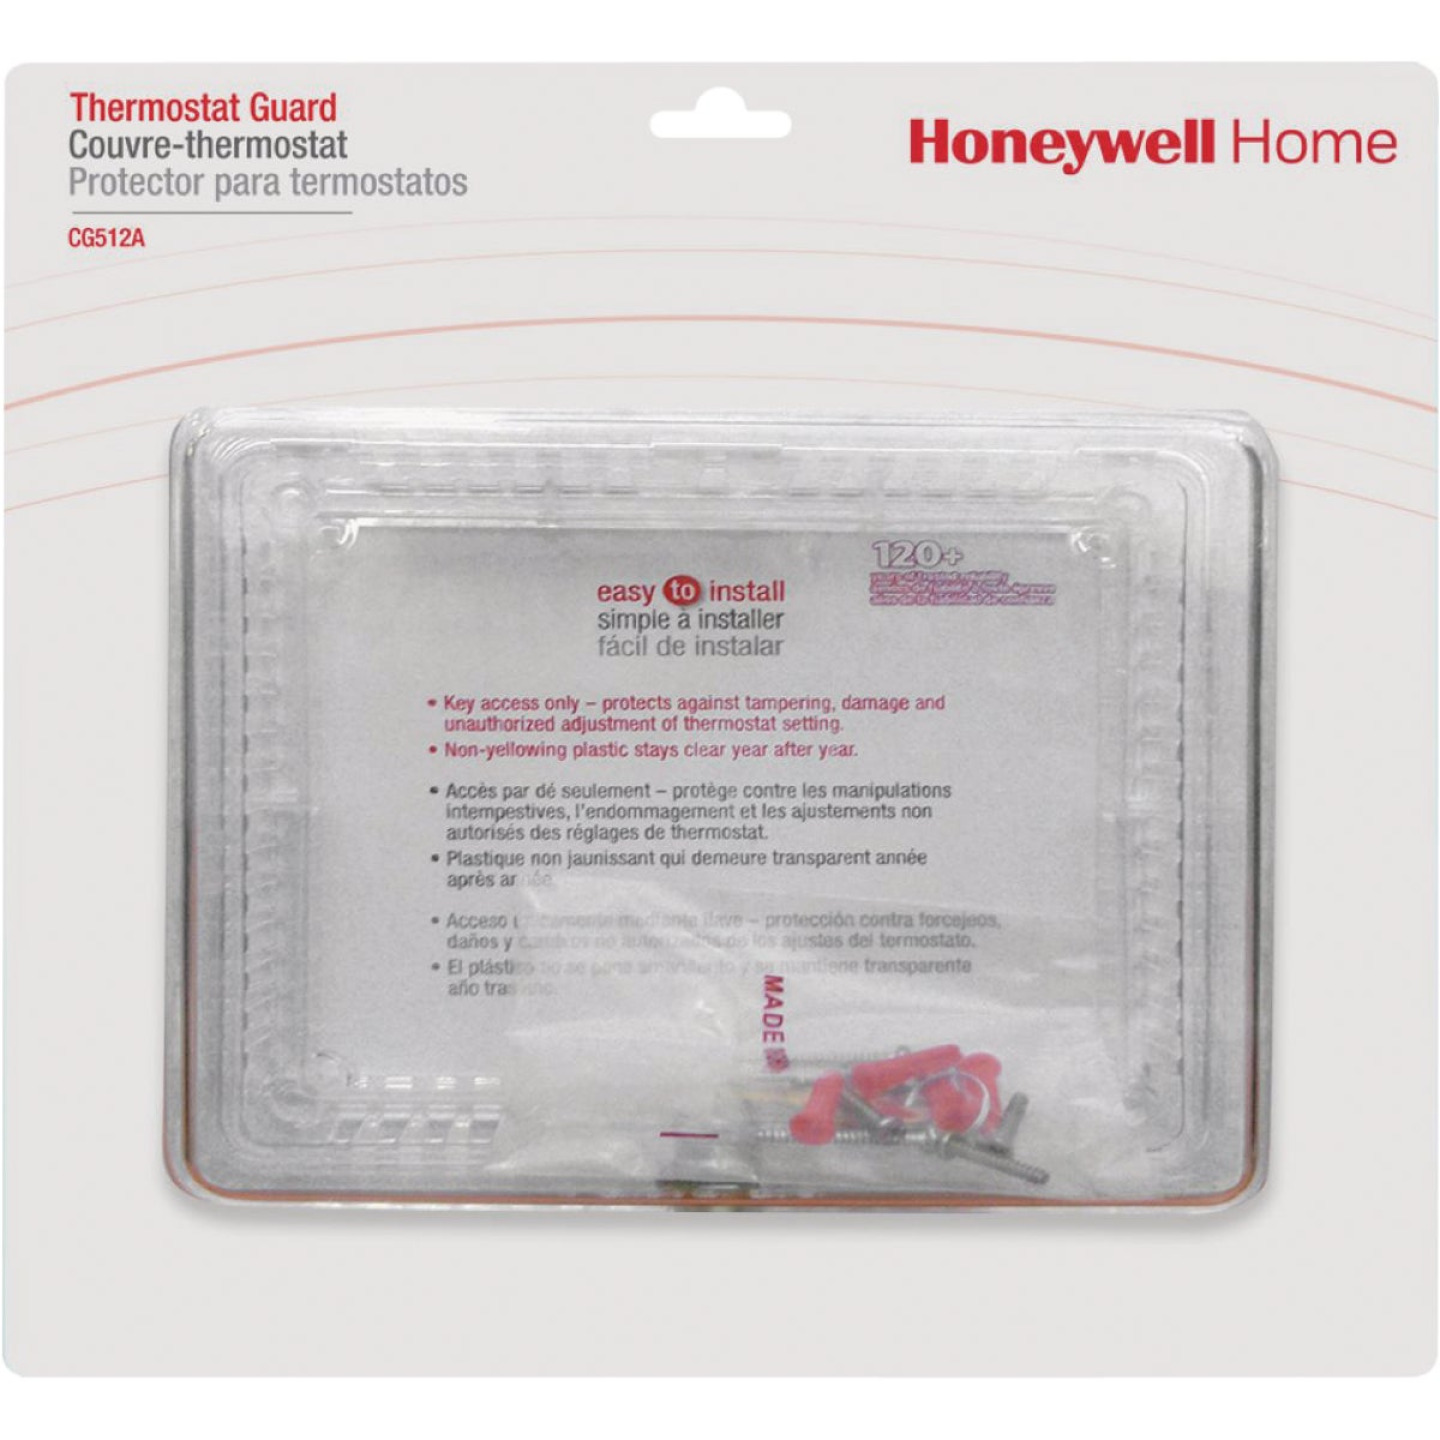 Honeywell Clear 9-3/4 In. 7-1/4 In. Thermostat Guard Image 1